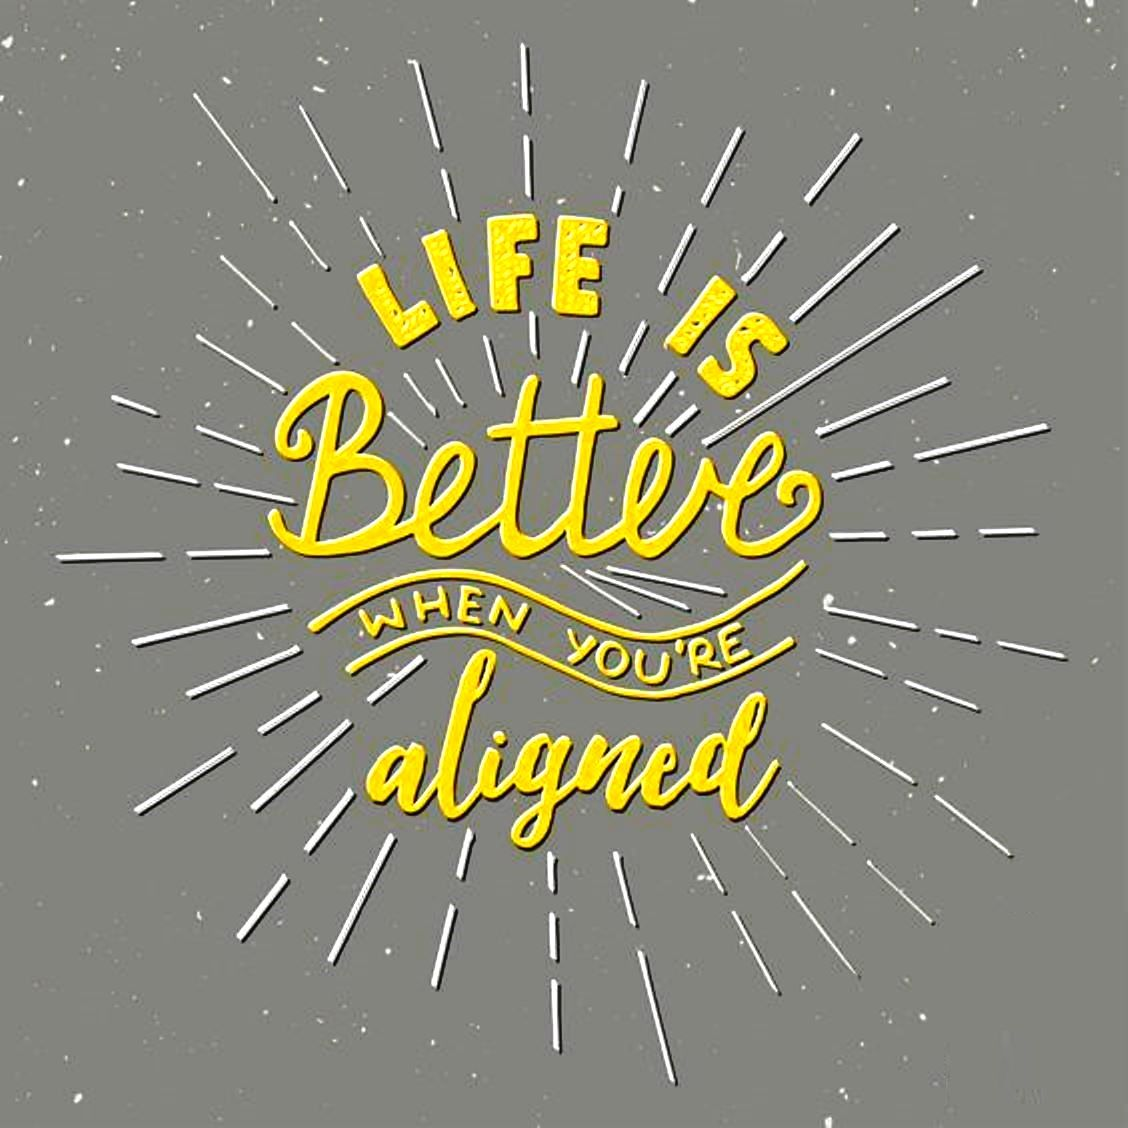 Life is better when you're aligned. 💆 GetAdjusted